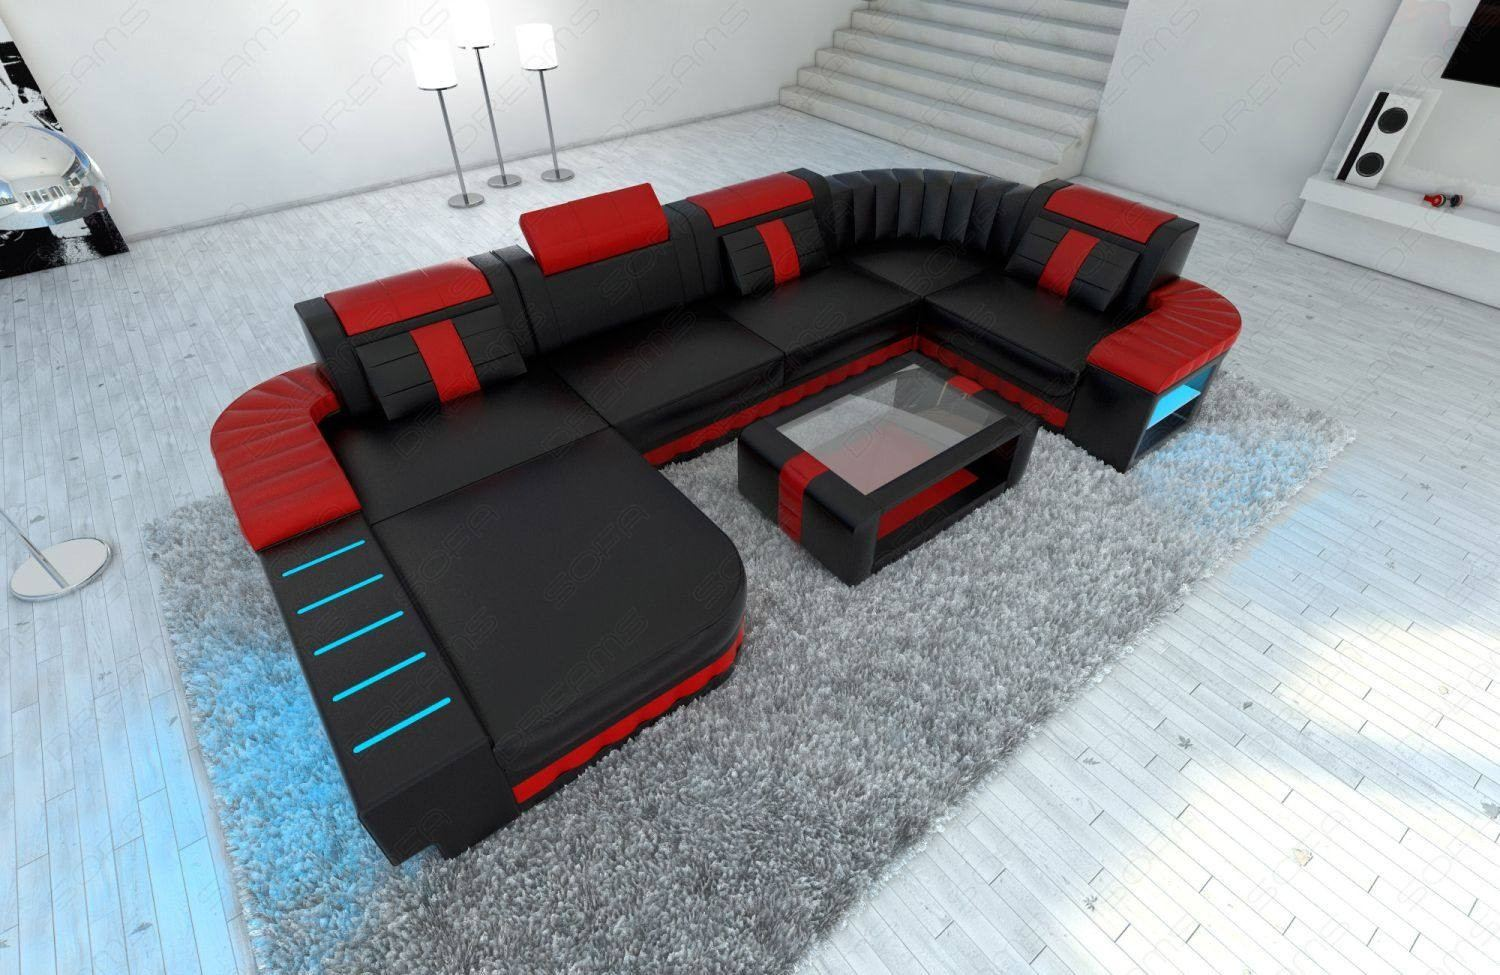 Marvelous Design Sectional Sofa Boston Led U Shape Spiritservingveterans Wood Chair Design Ideas Spiritservingveteransorg